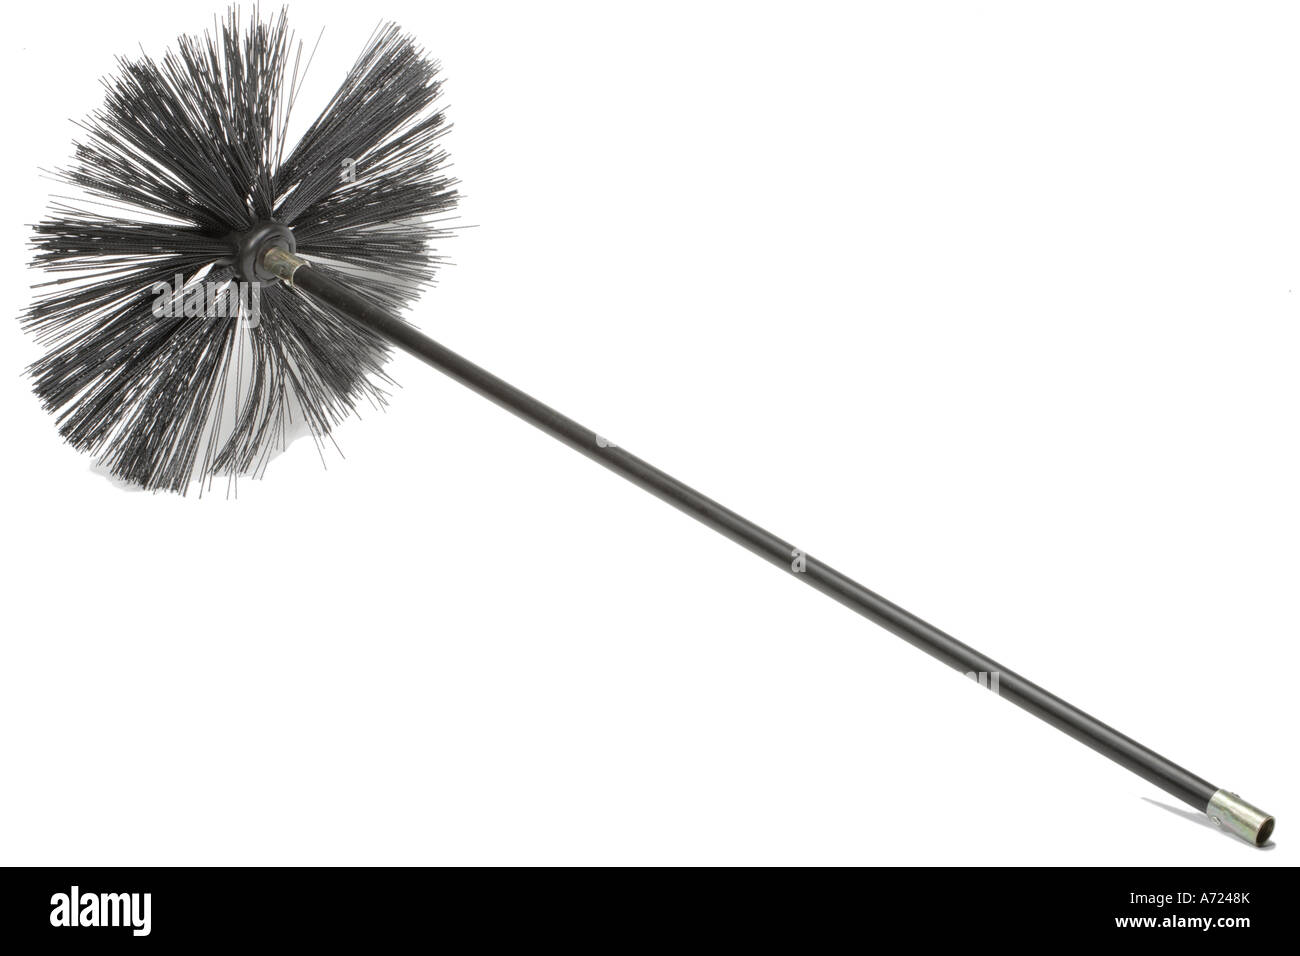 Chimney Sweeps Brush And Rods Stock Photo Royalty Free